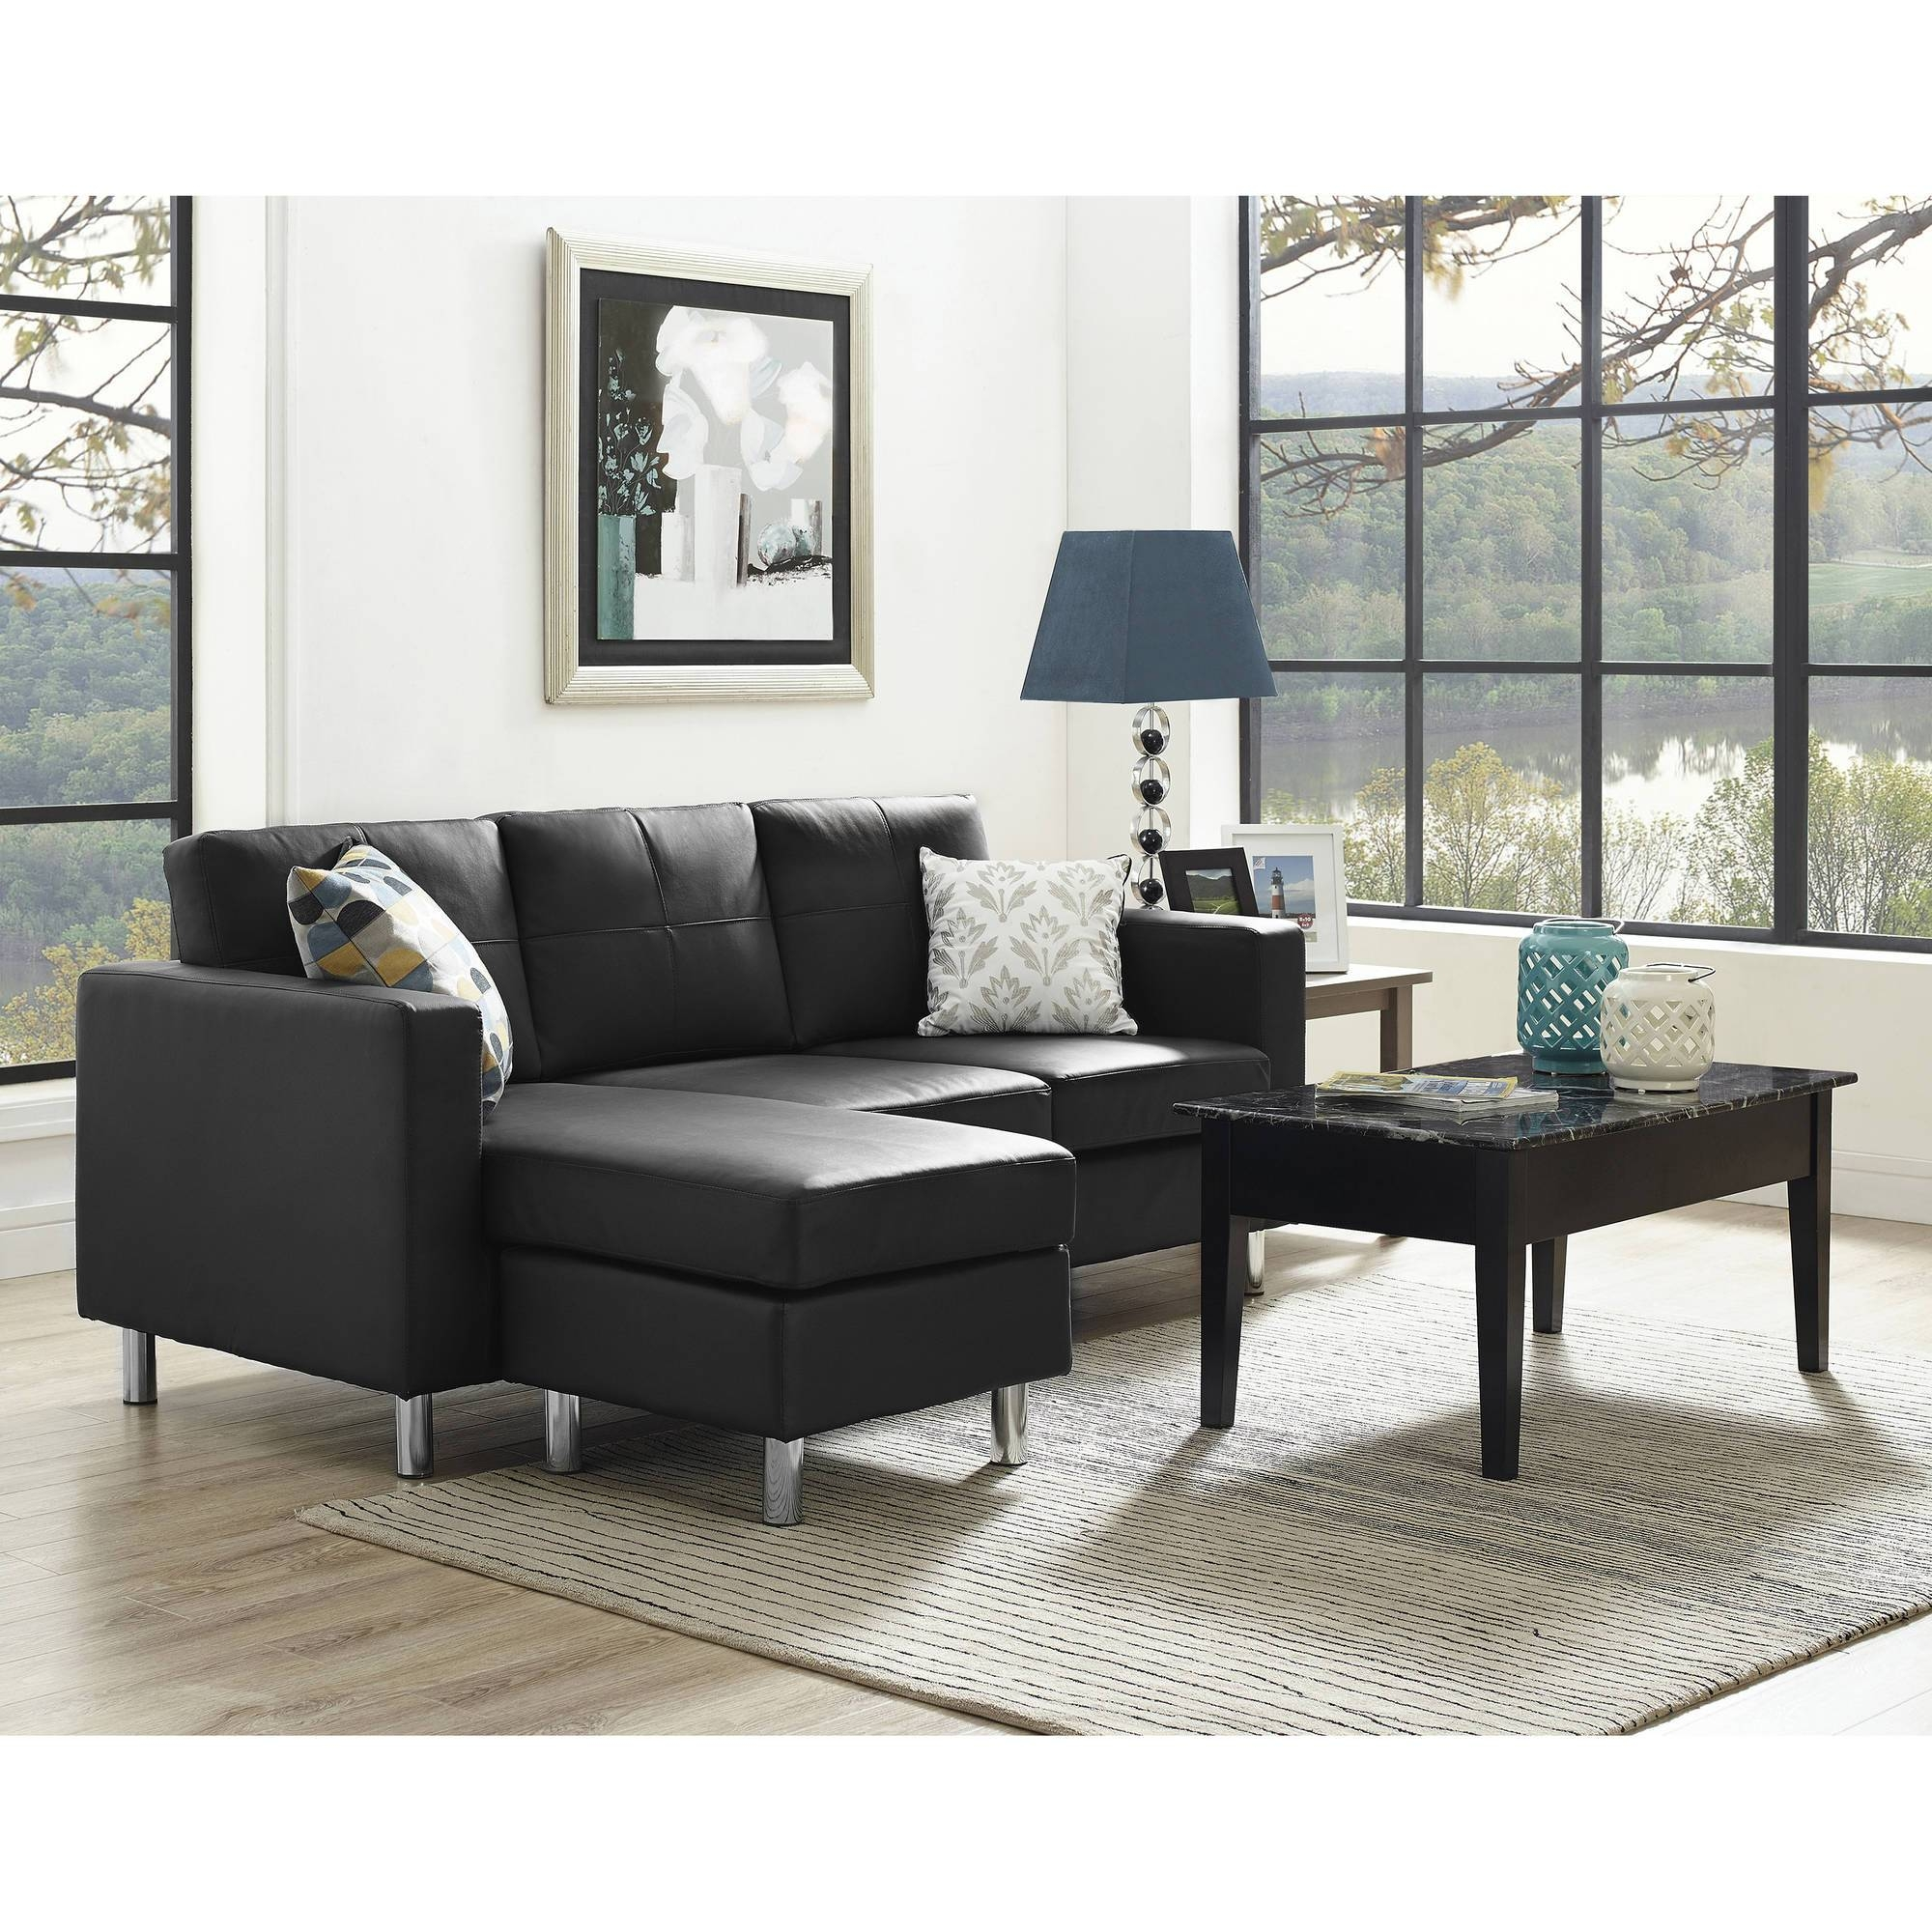 Furniture & Sofa: Perfect Small Spaces Configurable Sectional Sofa Intended For Sectional Sofas For Small Spaces With Recliners (View 6 of 30)